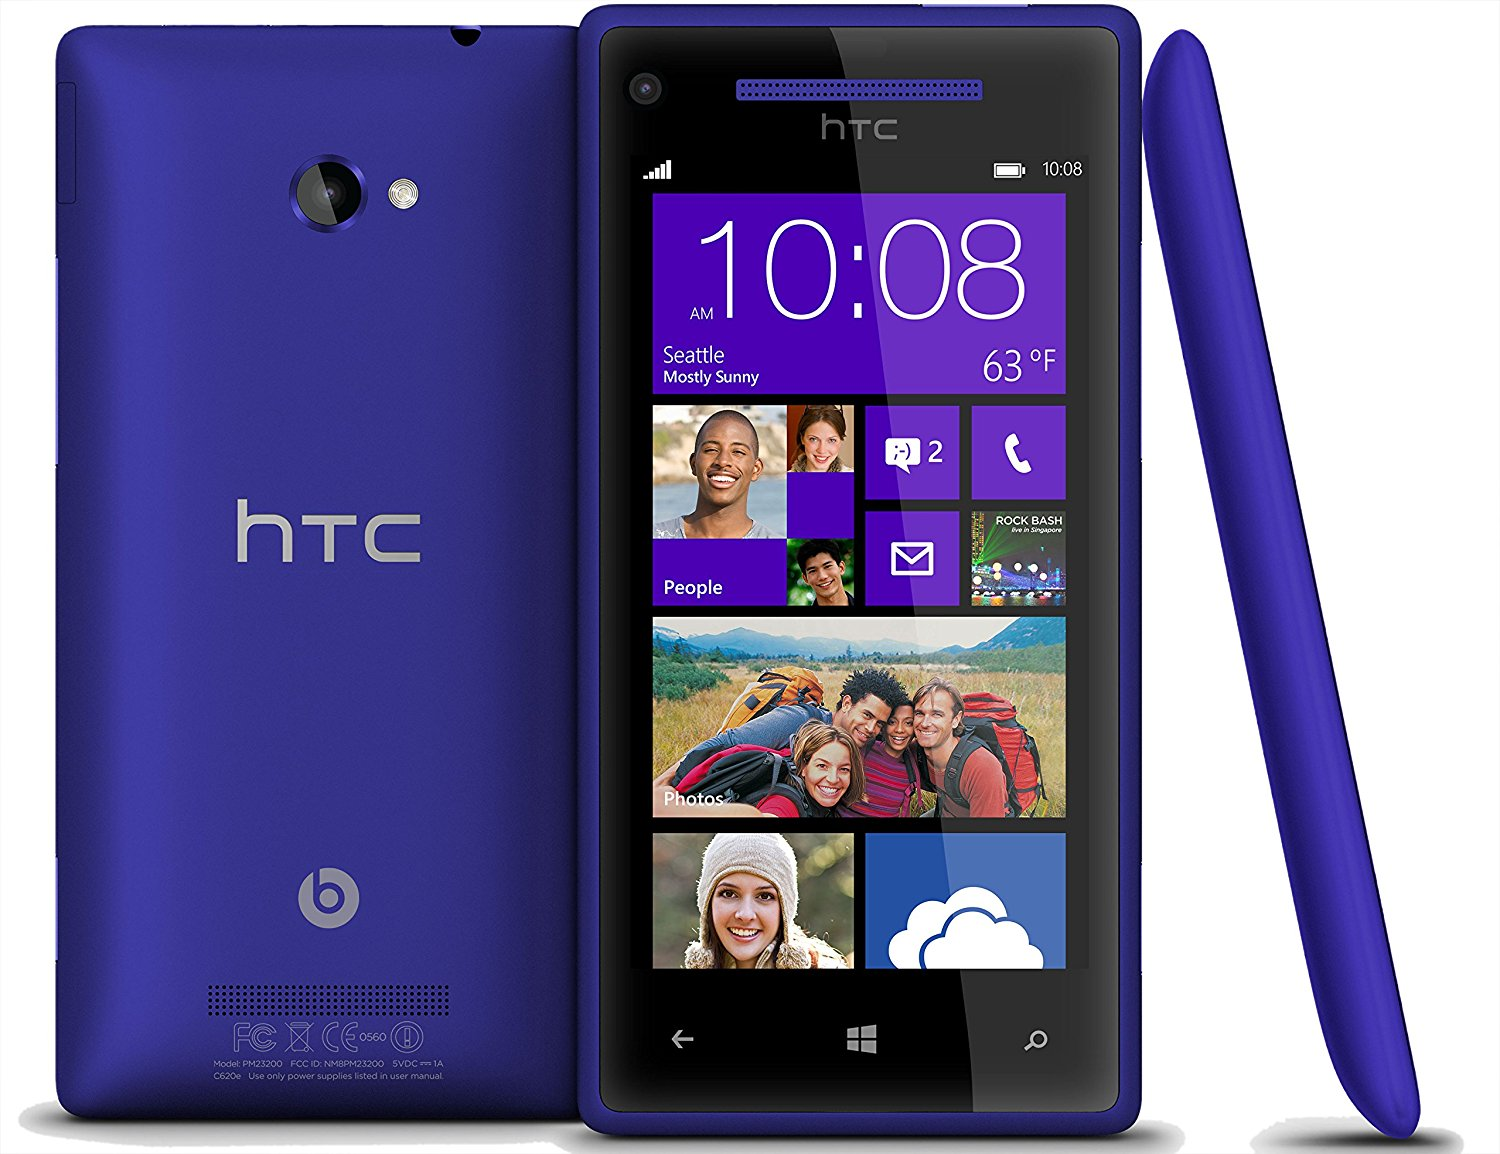 Unlocked HTC 8X 8GB Windows Phone - 8MP Camera, Beats Audio & HD Display